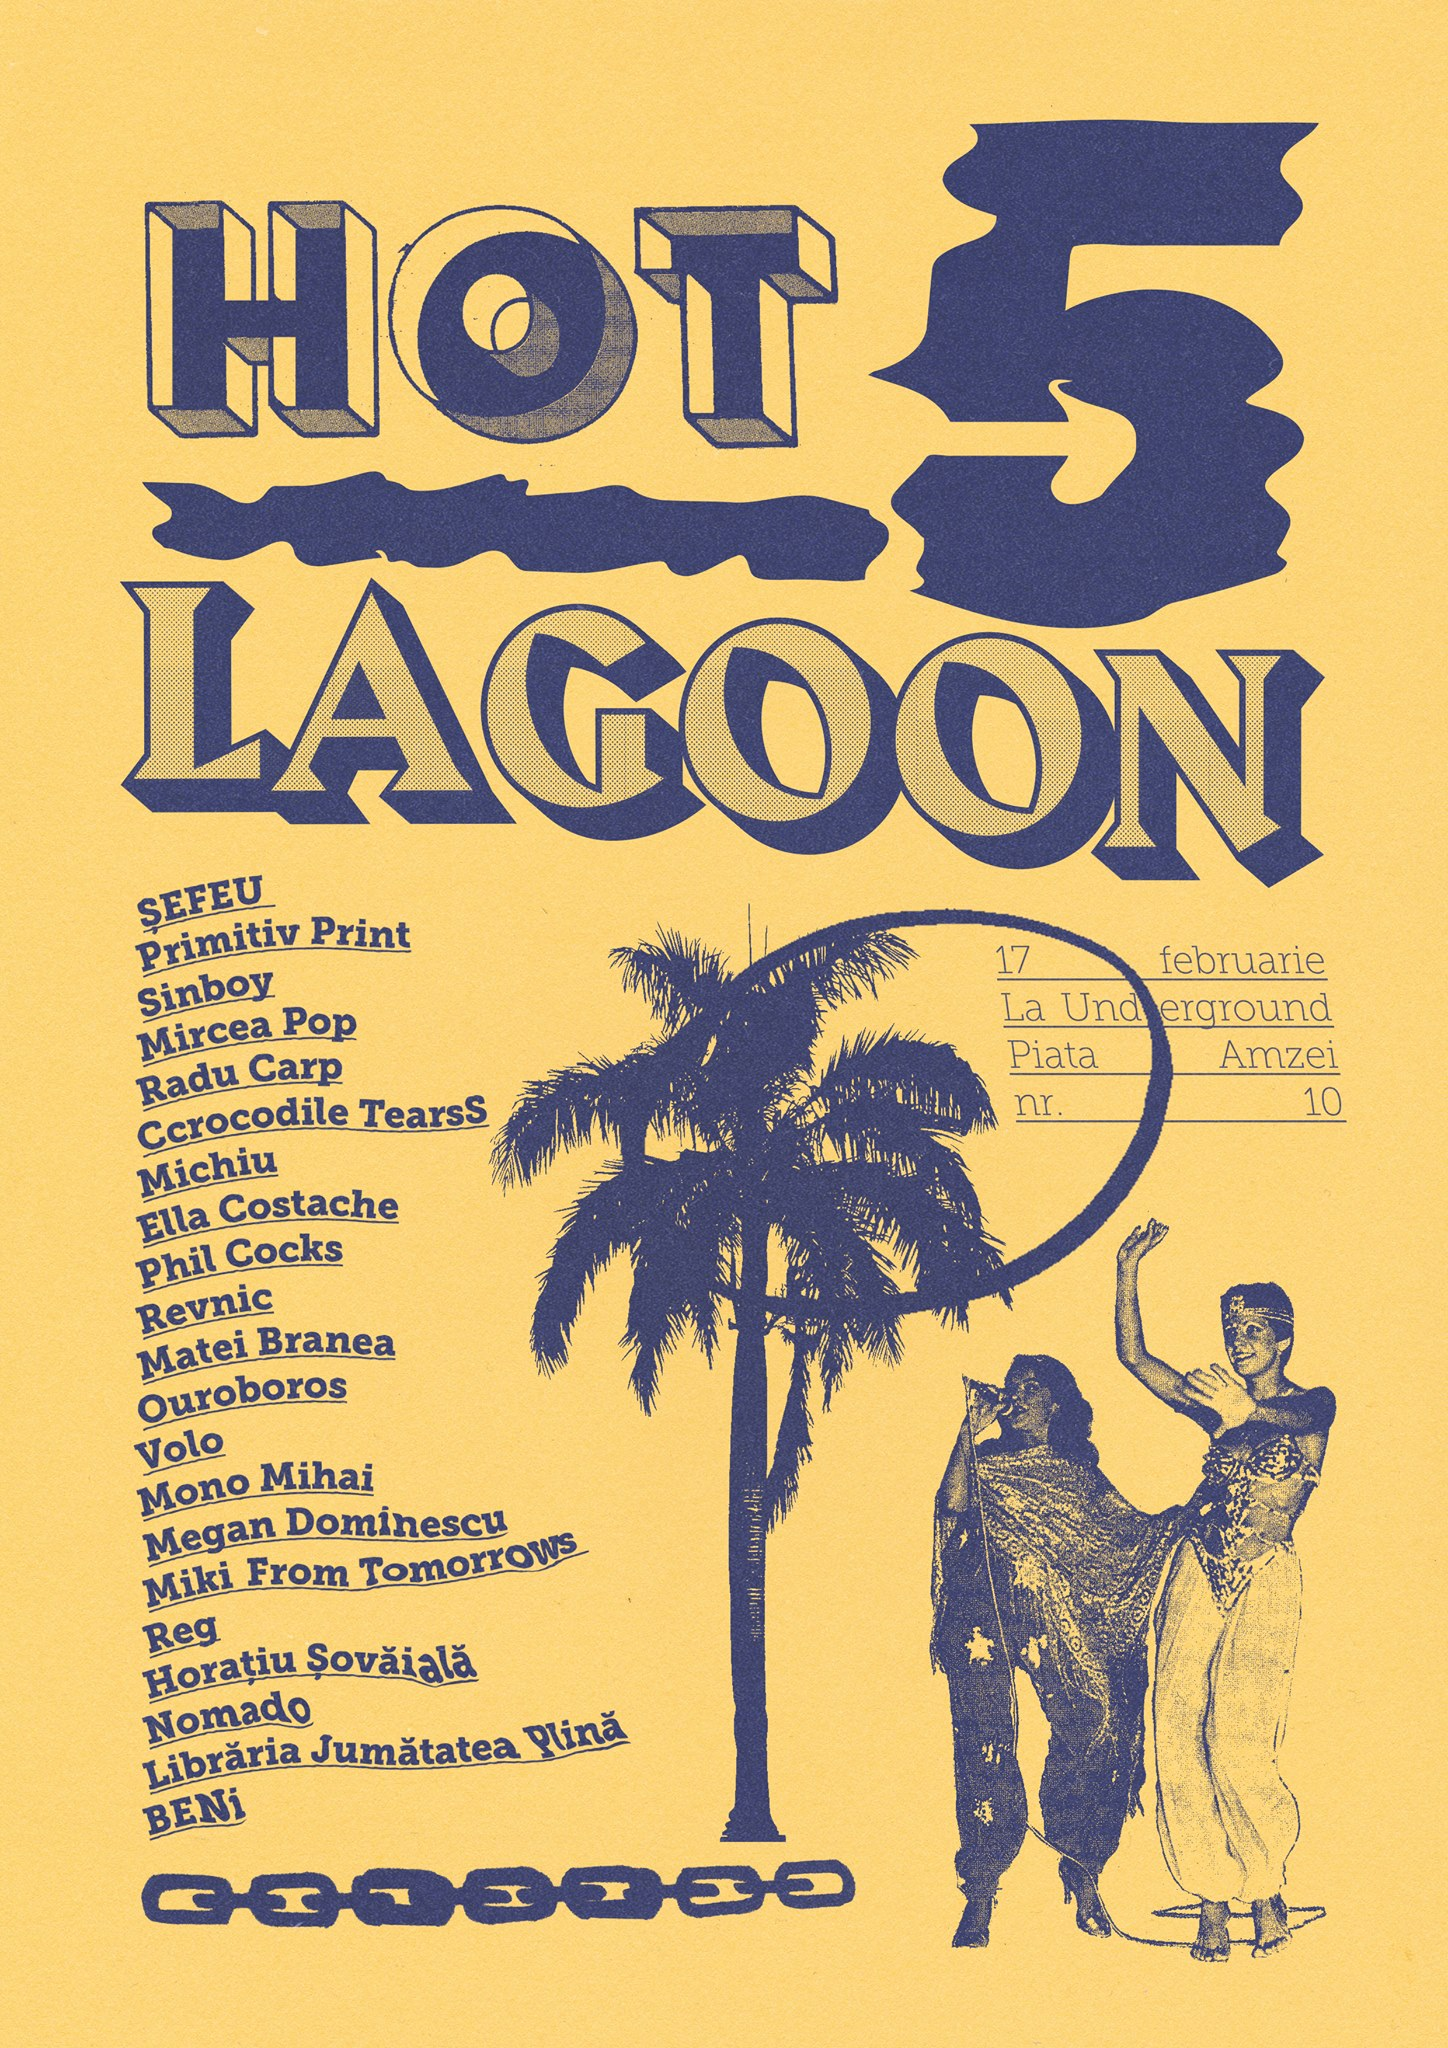 Hot Lagoon - Fair #5